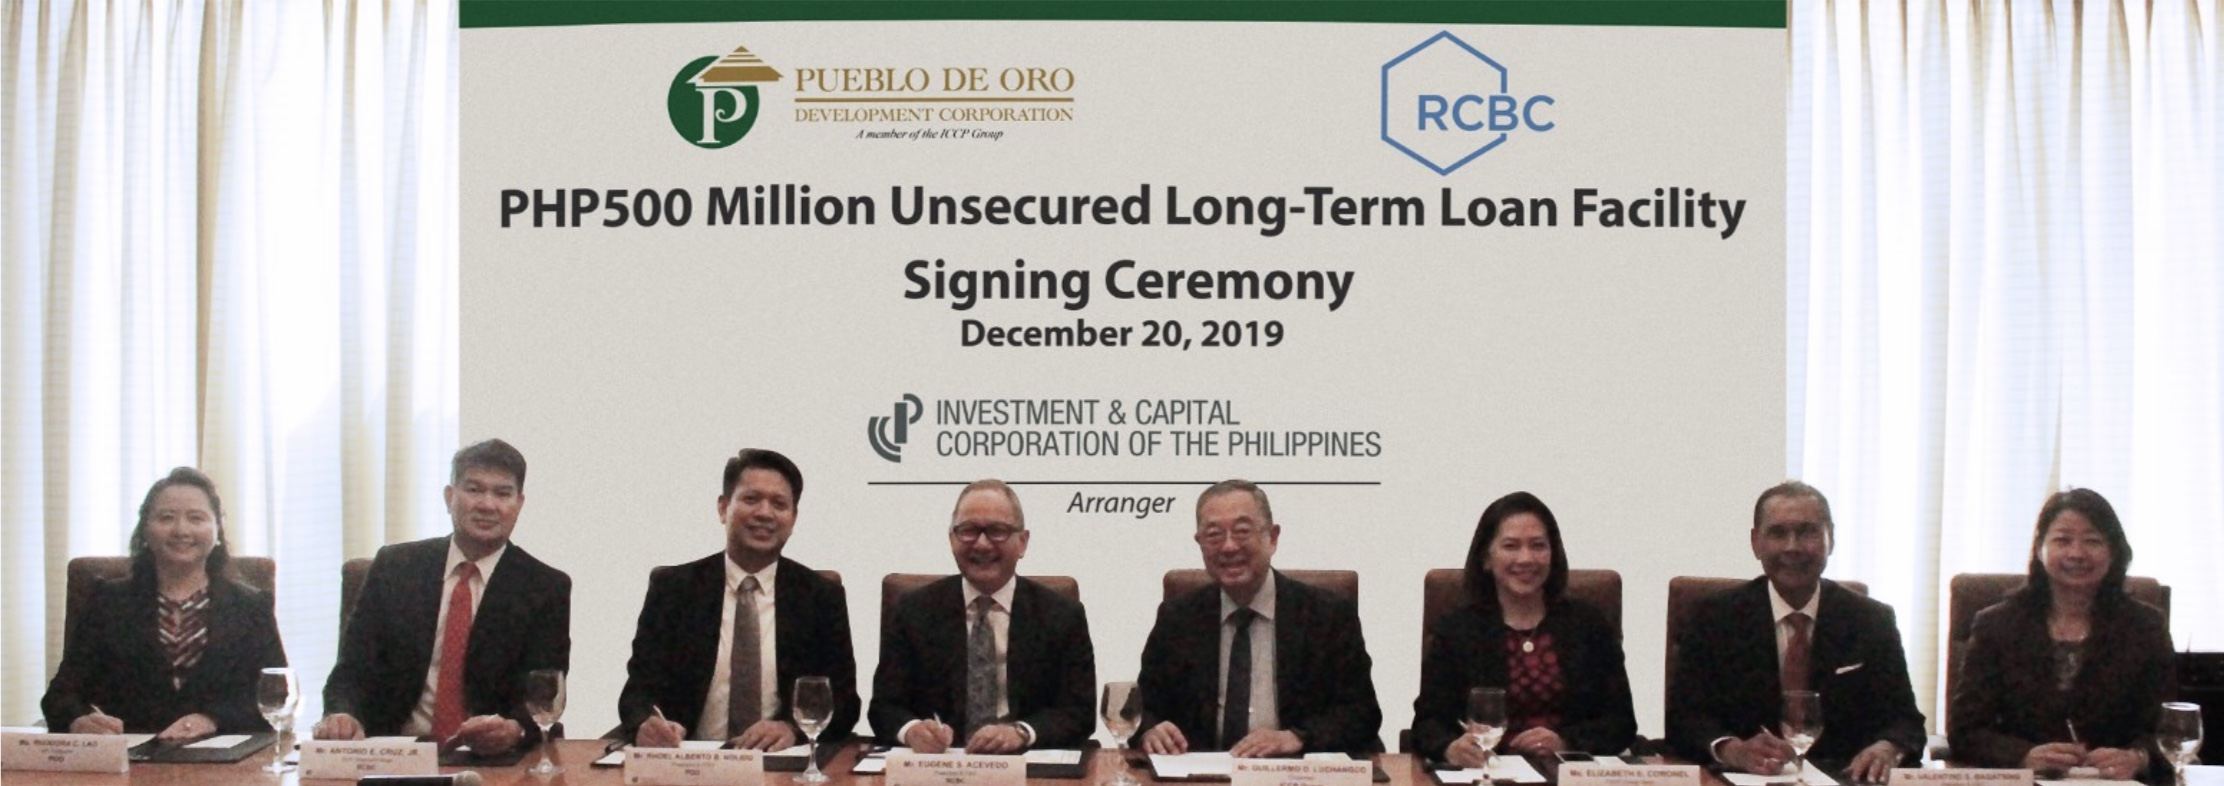 ICCP Arranges PH500M Term Loan for Pueblo de Oro